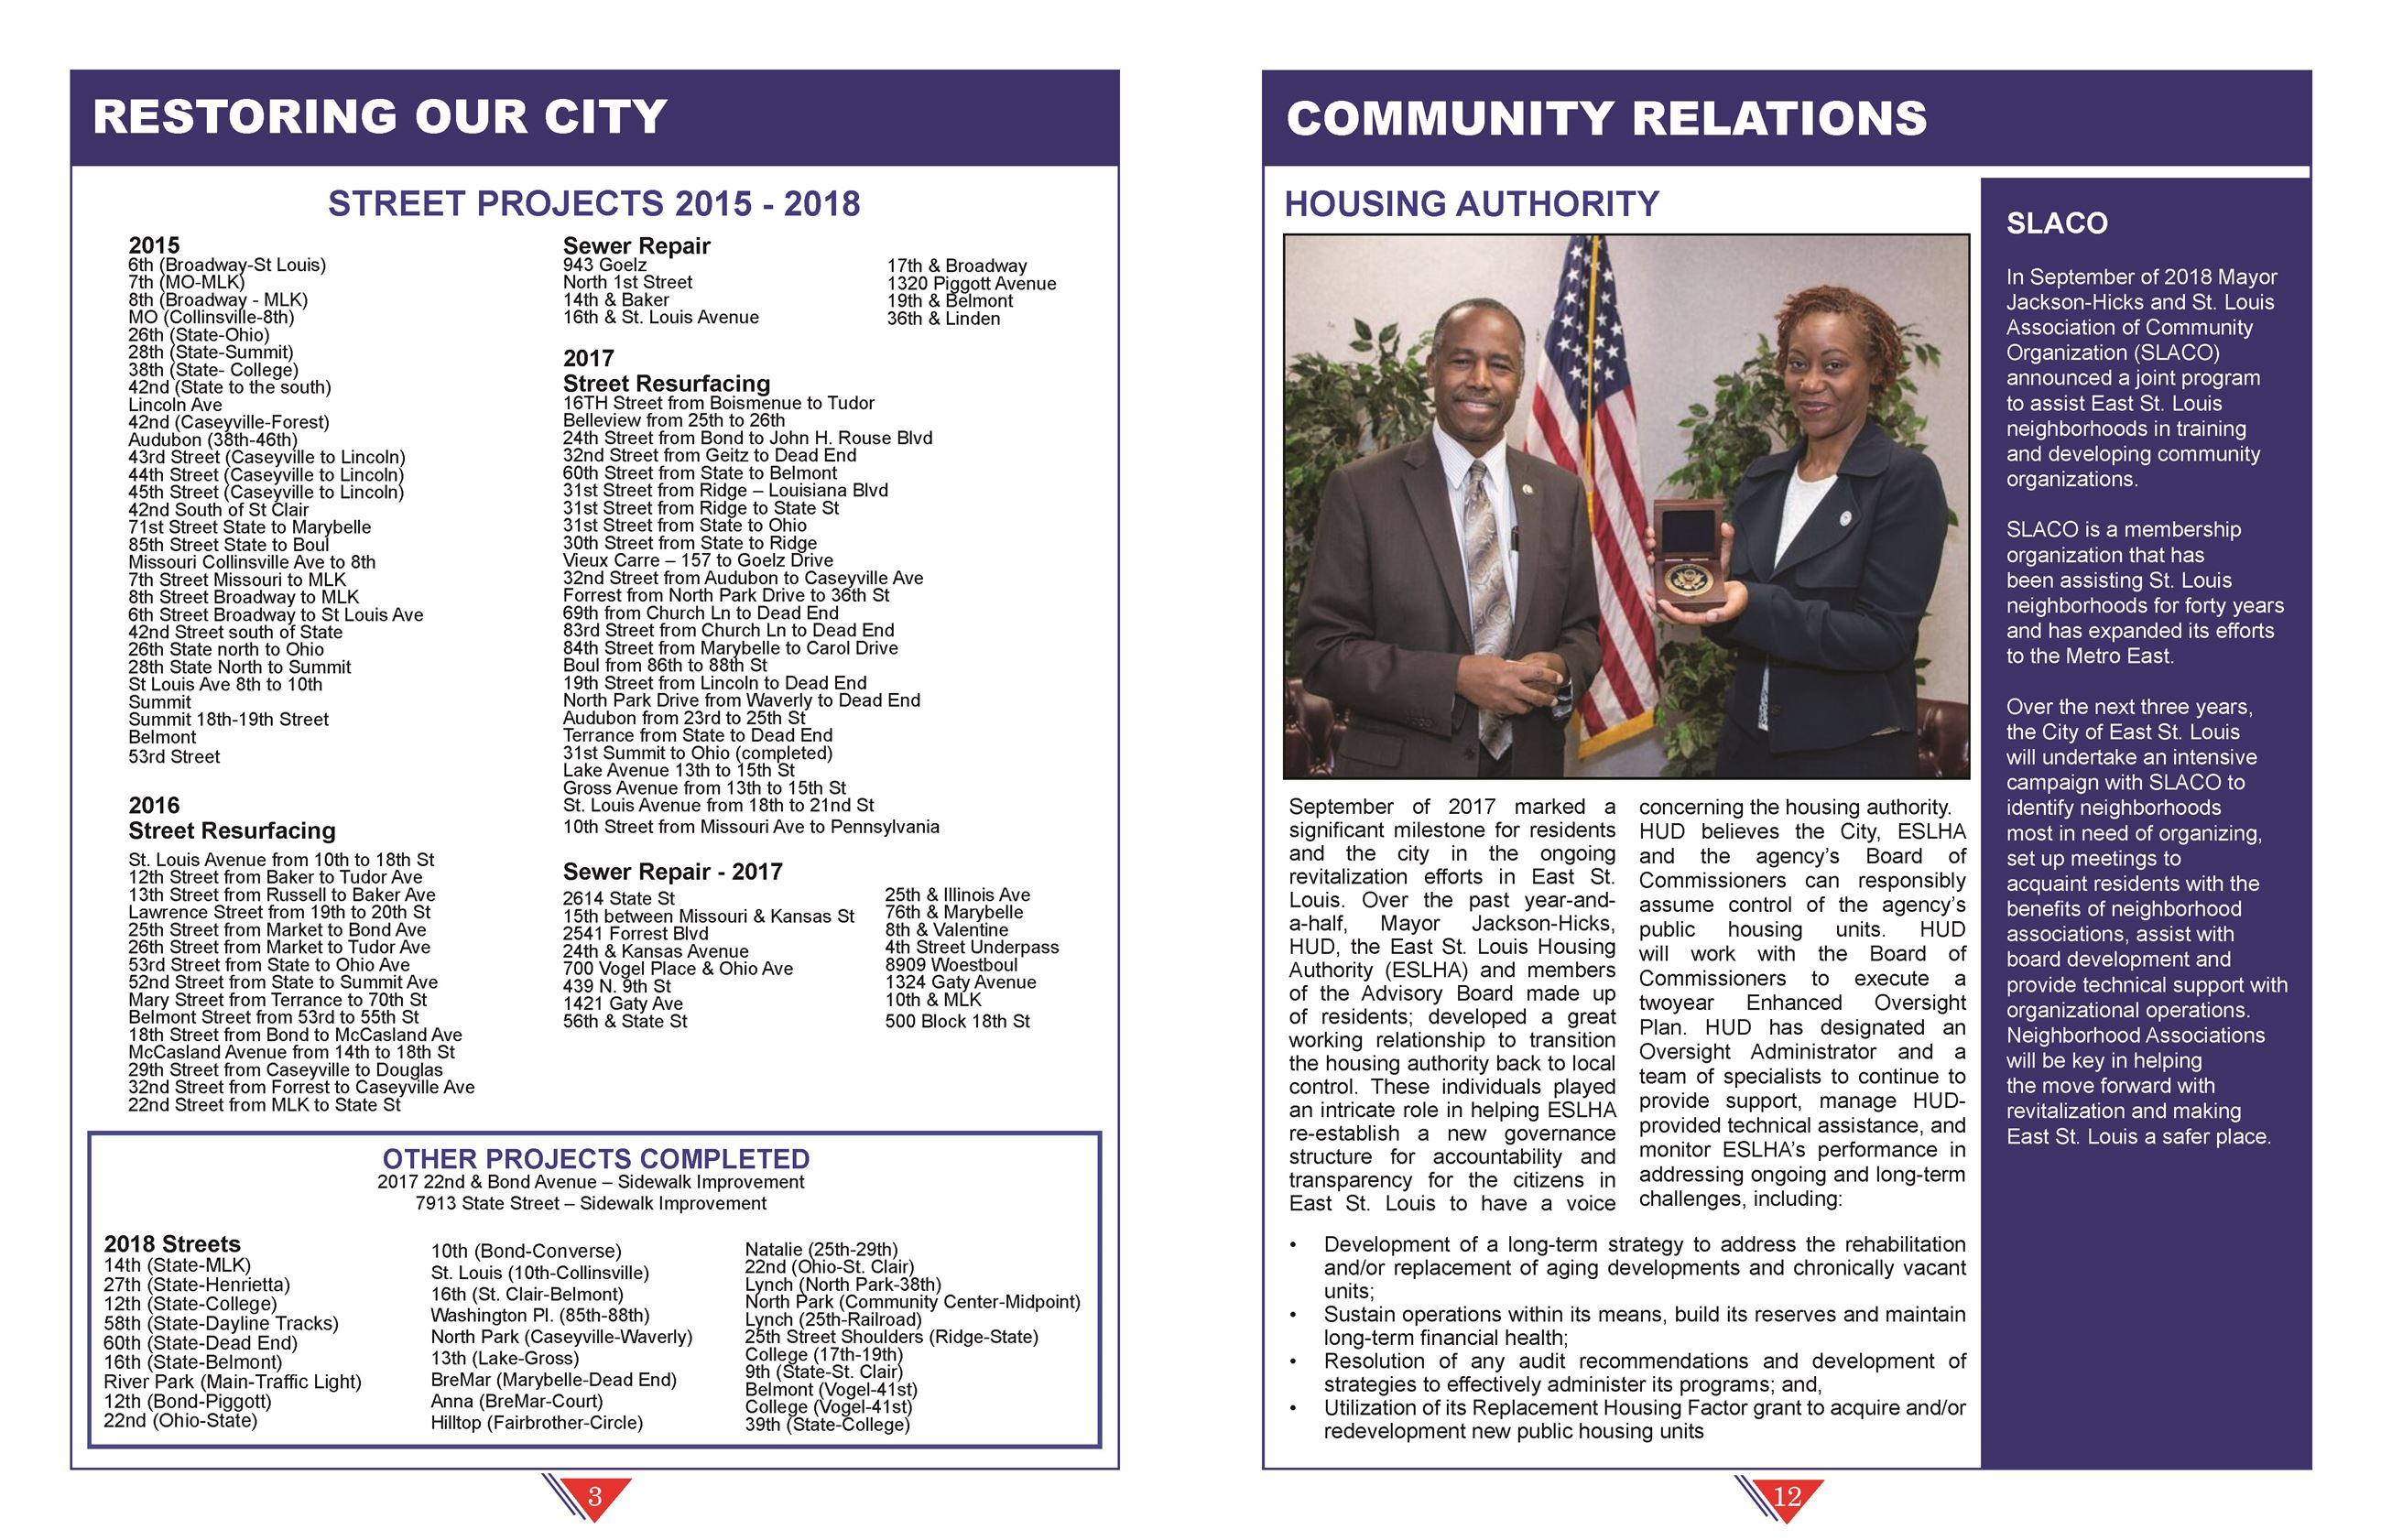 MAYORHICKS_REPORT_FINAL_Page_4